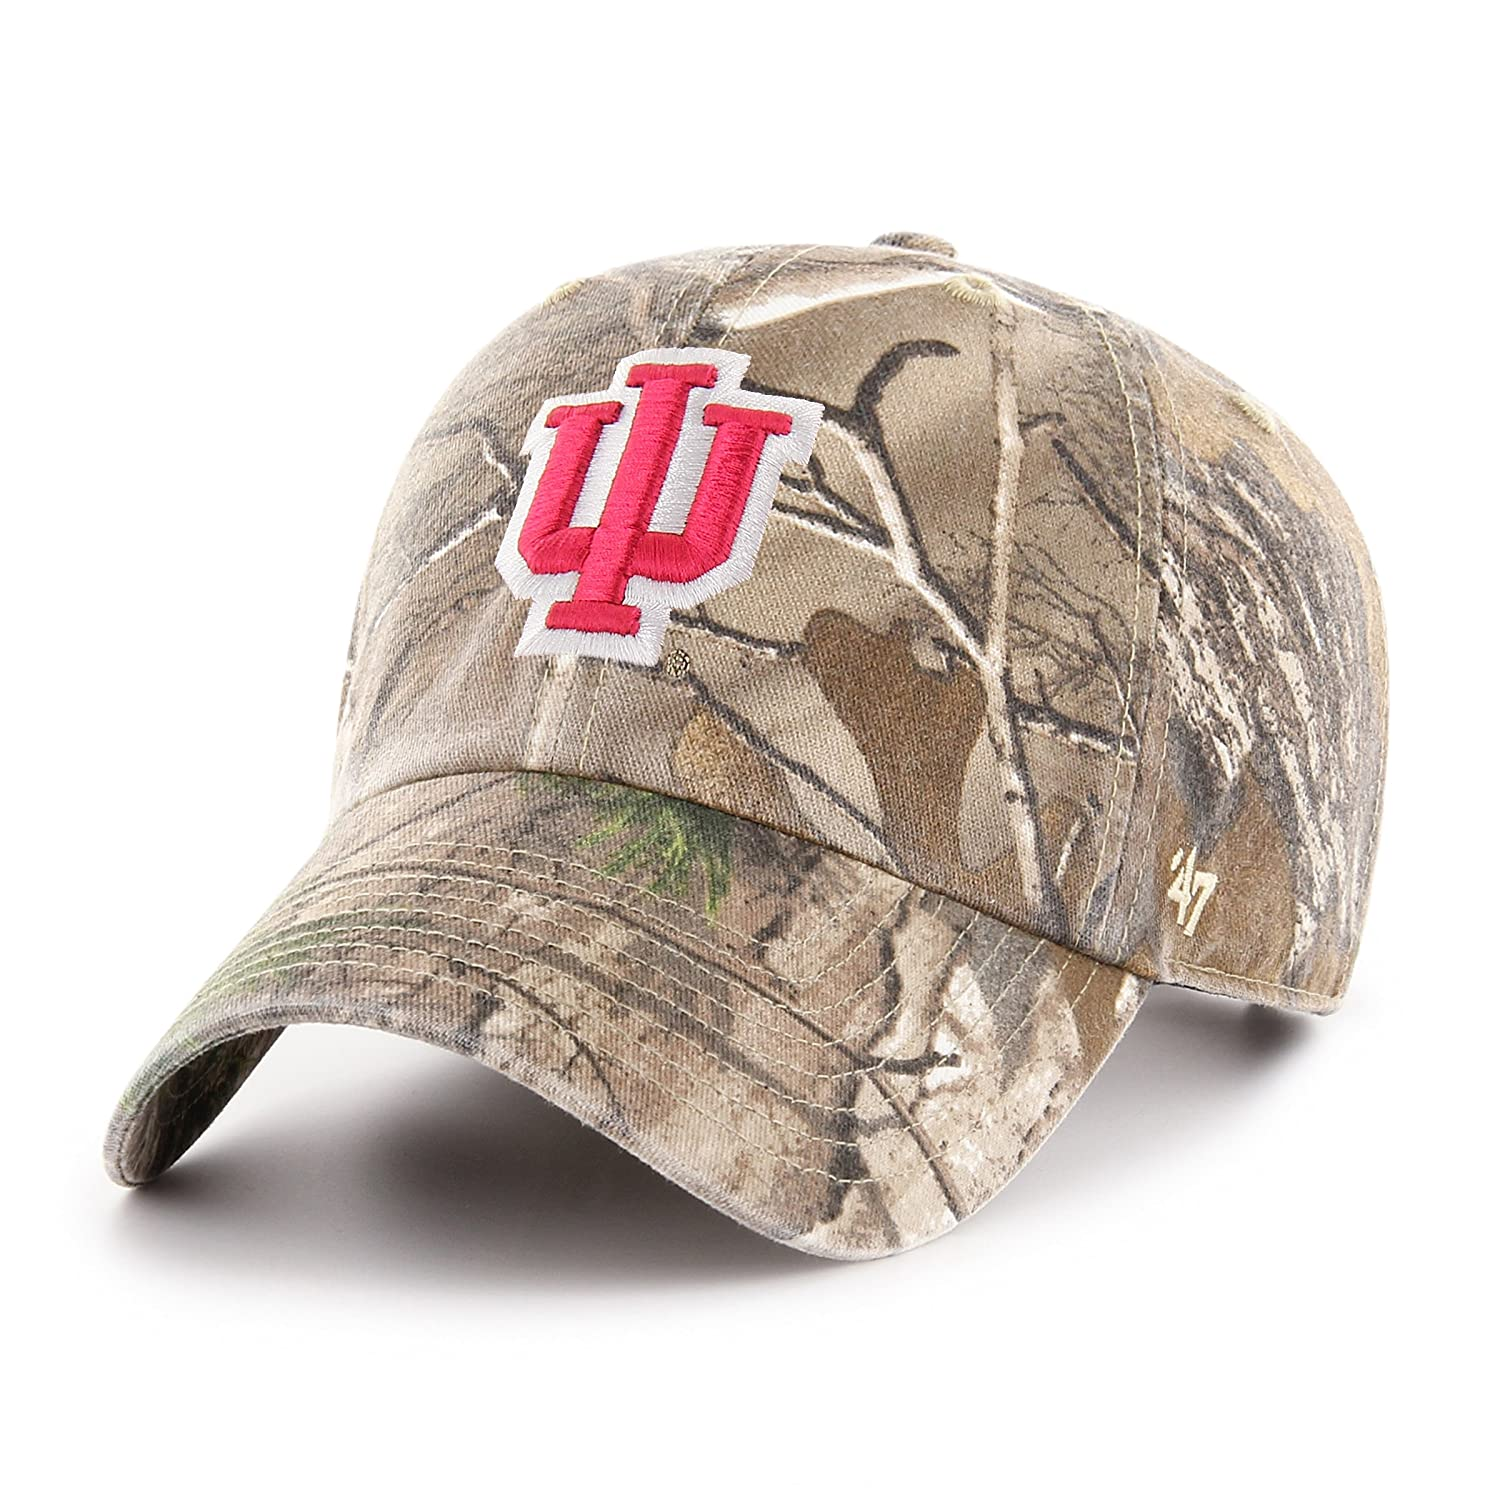 Realtree Camo One Size 47 NCAA Indiana Hoosiers Adult Clean Up Realtree Adjustable Hat